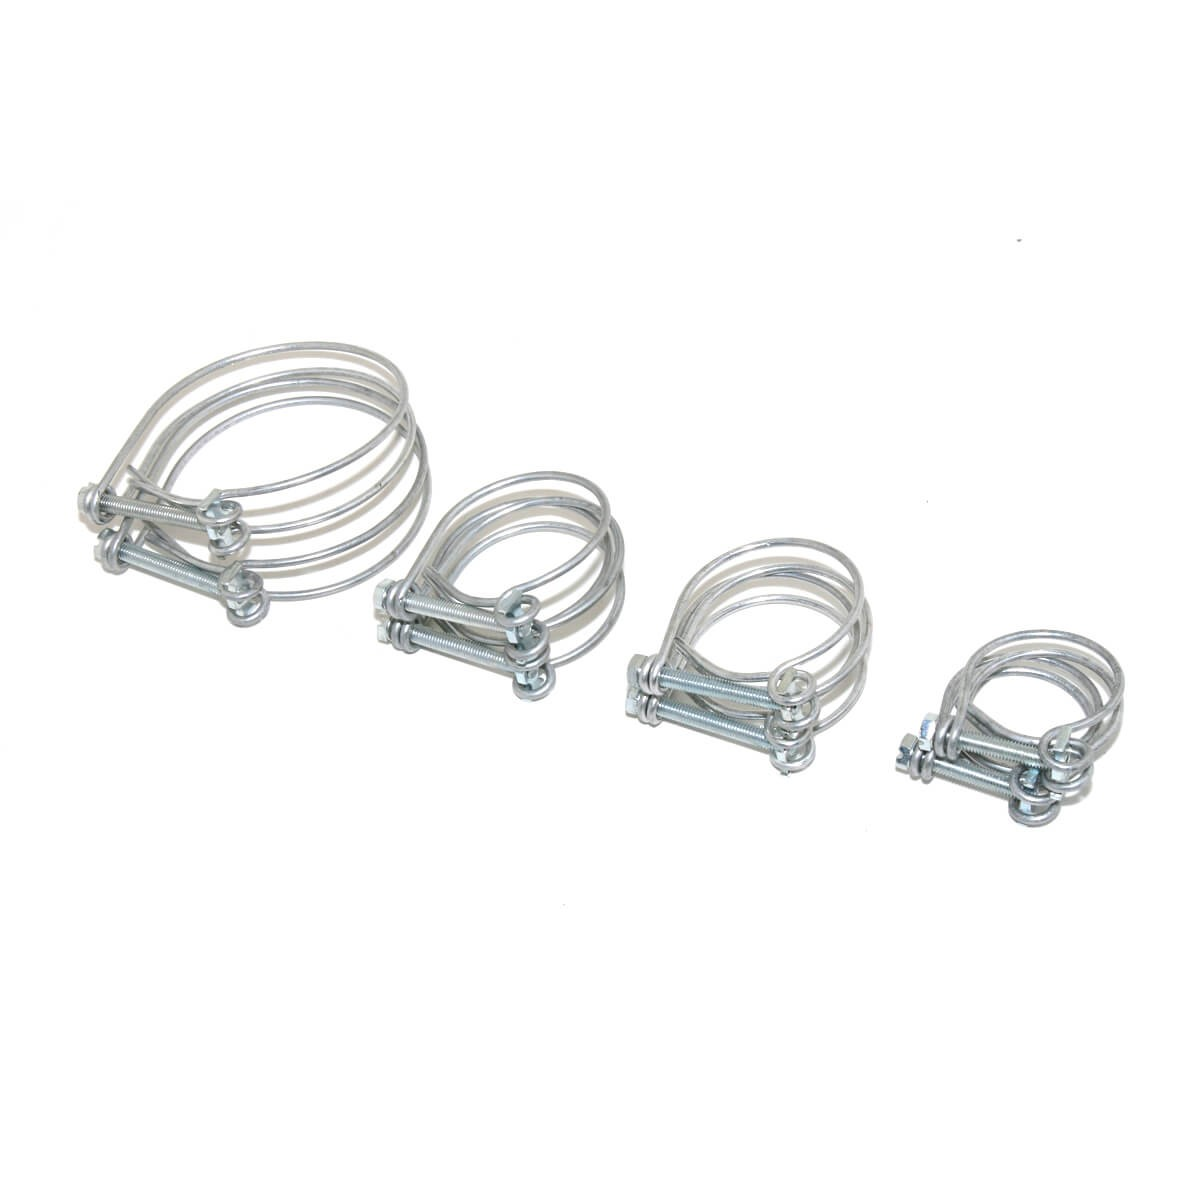 326 388 Hose Clamp Set 8 Clamps